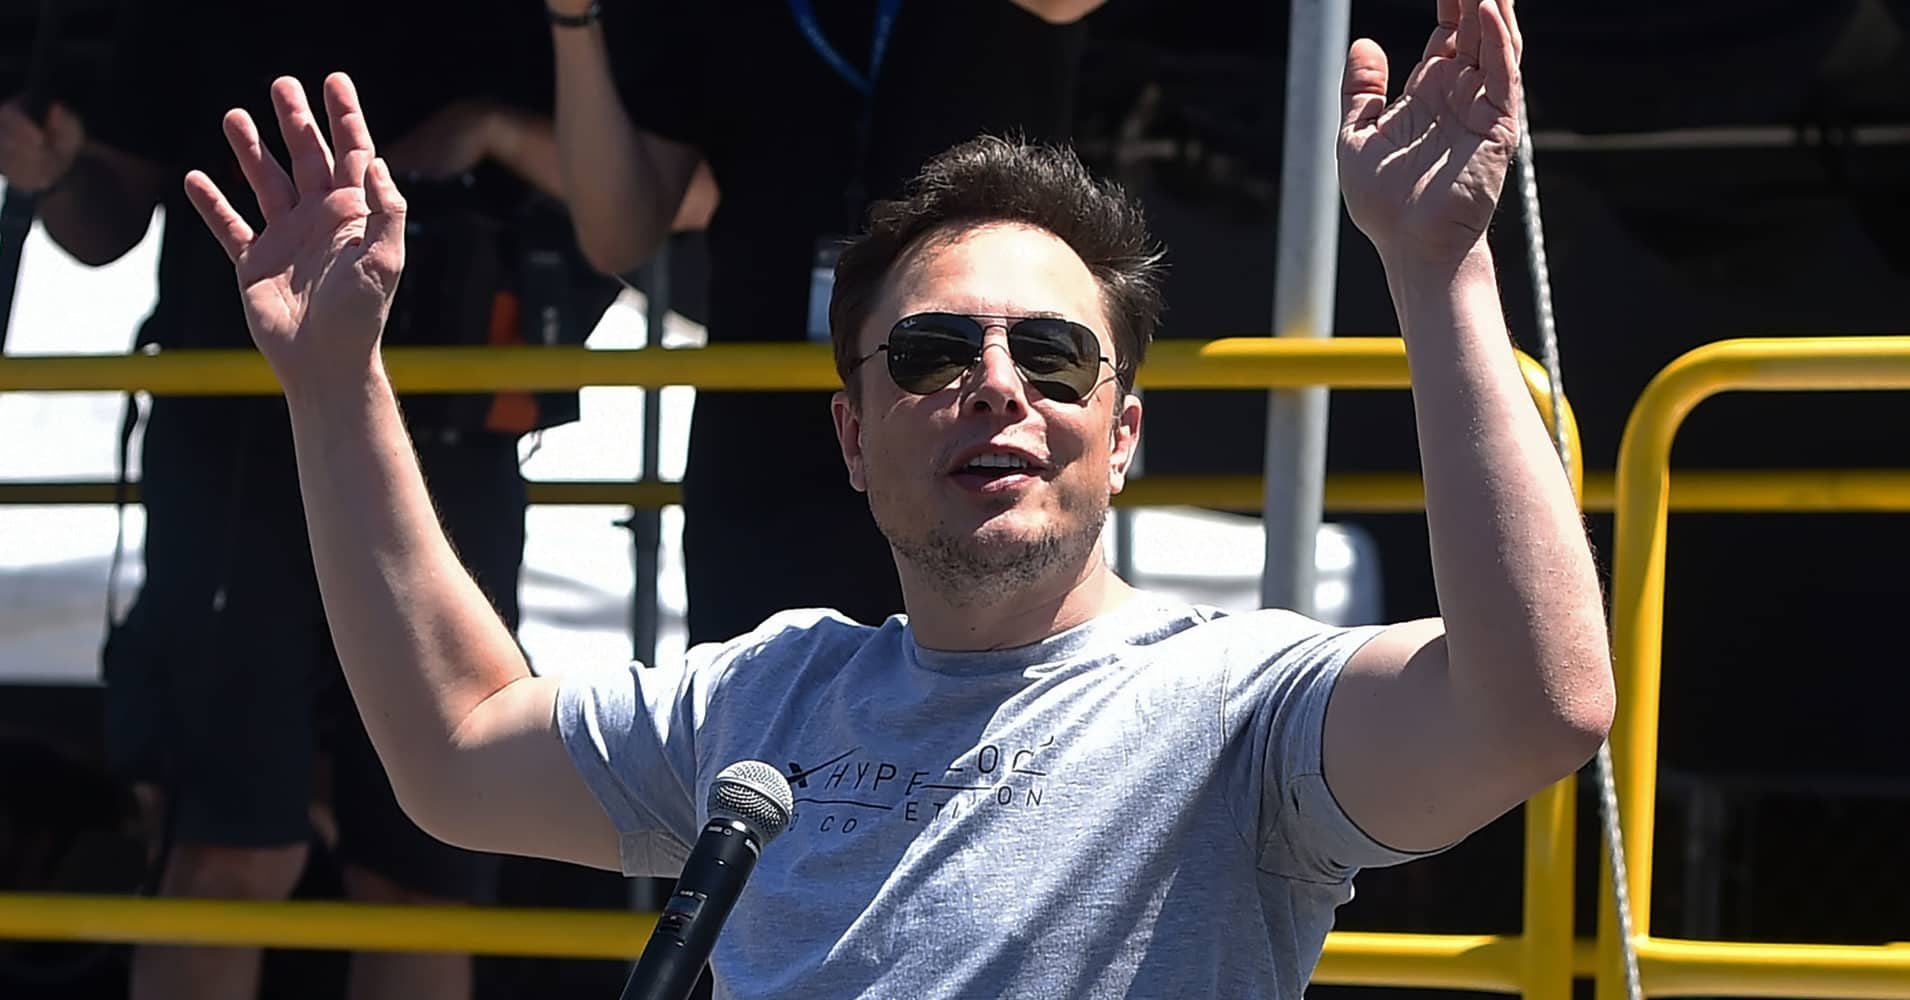 SpaceX, Tesla and The Boring Company founder Elon Musk speaks at the 2018 SpaceX Hyperloop Pod Competition, in Hawthorne, California on July 22, 2018.